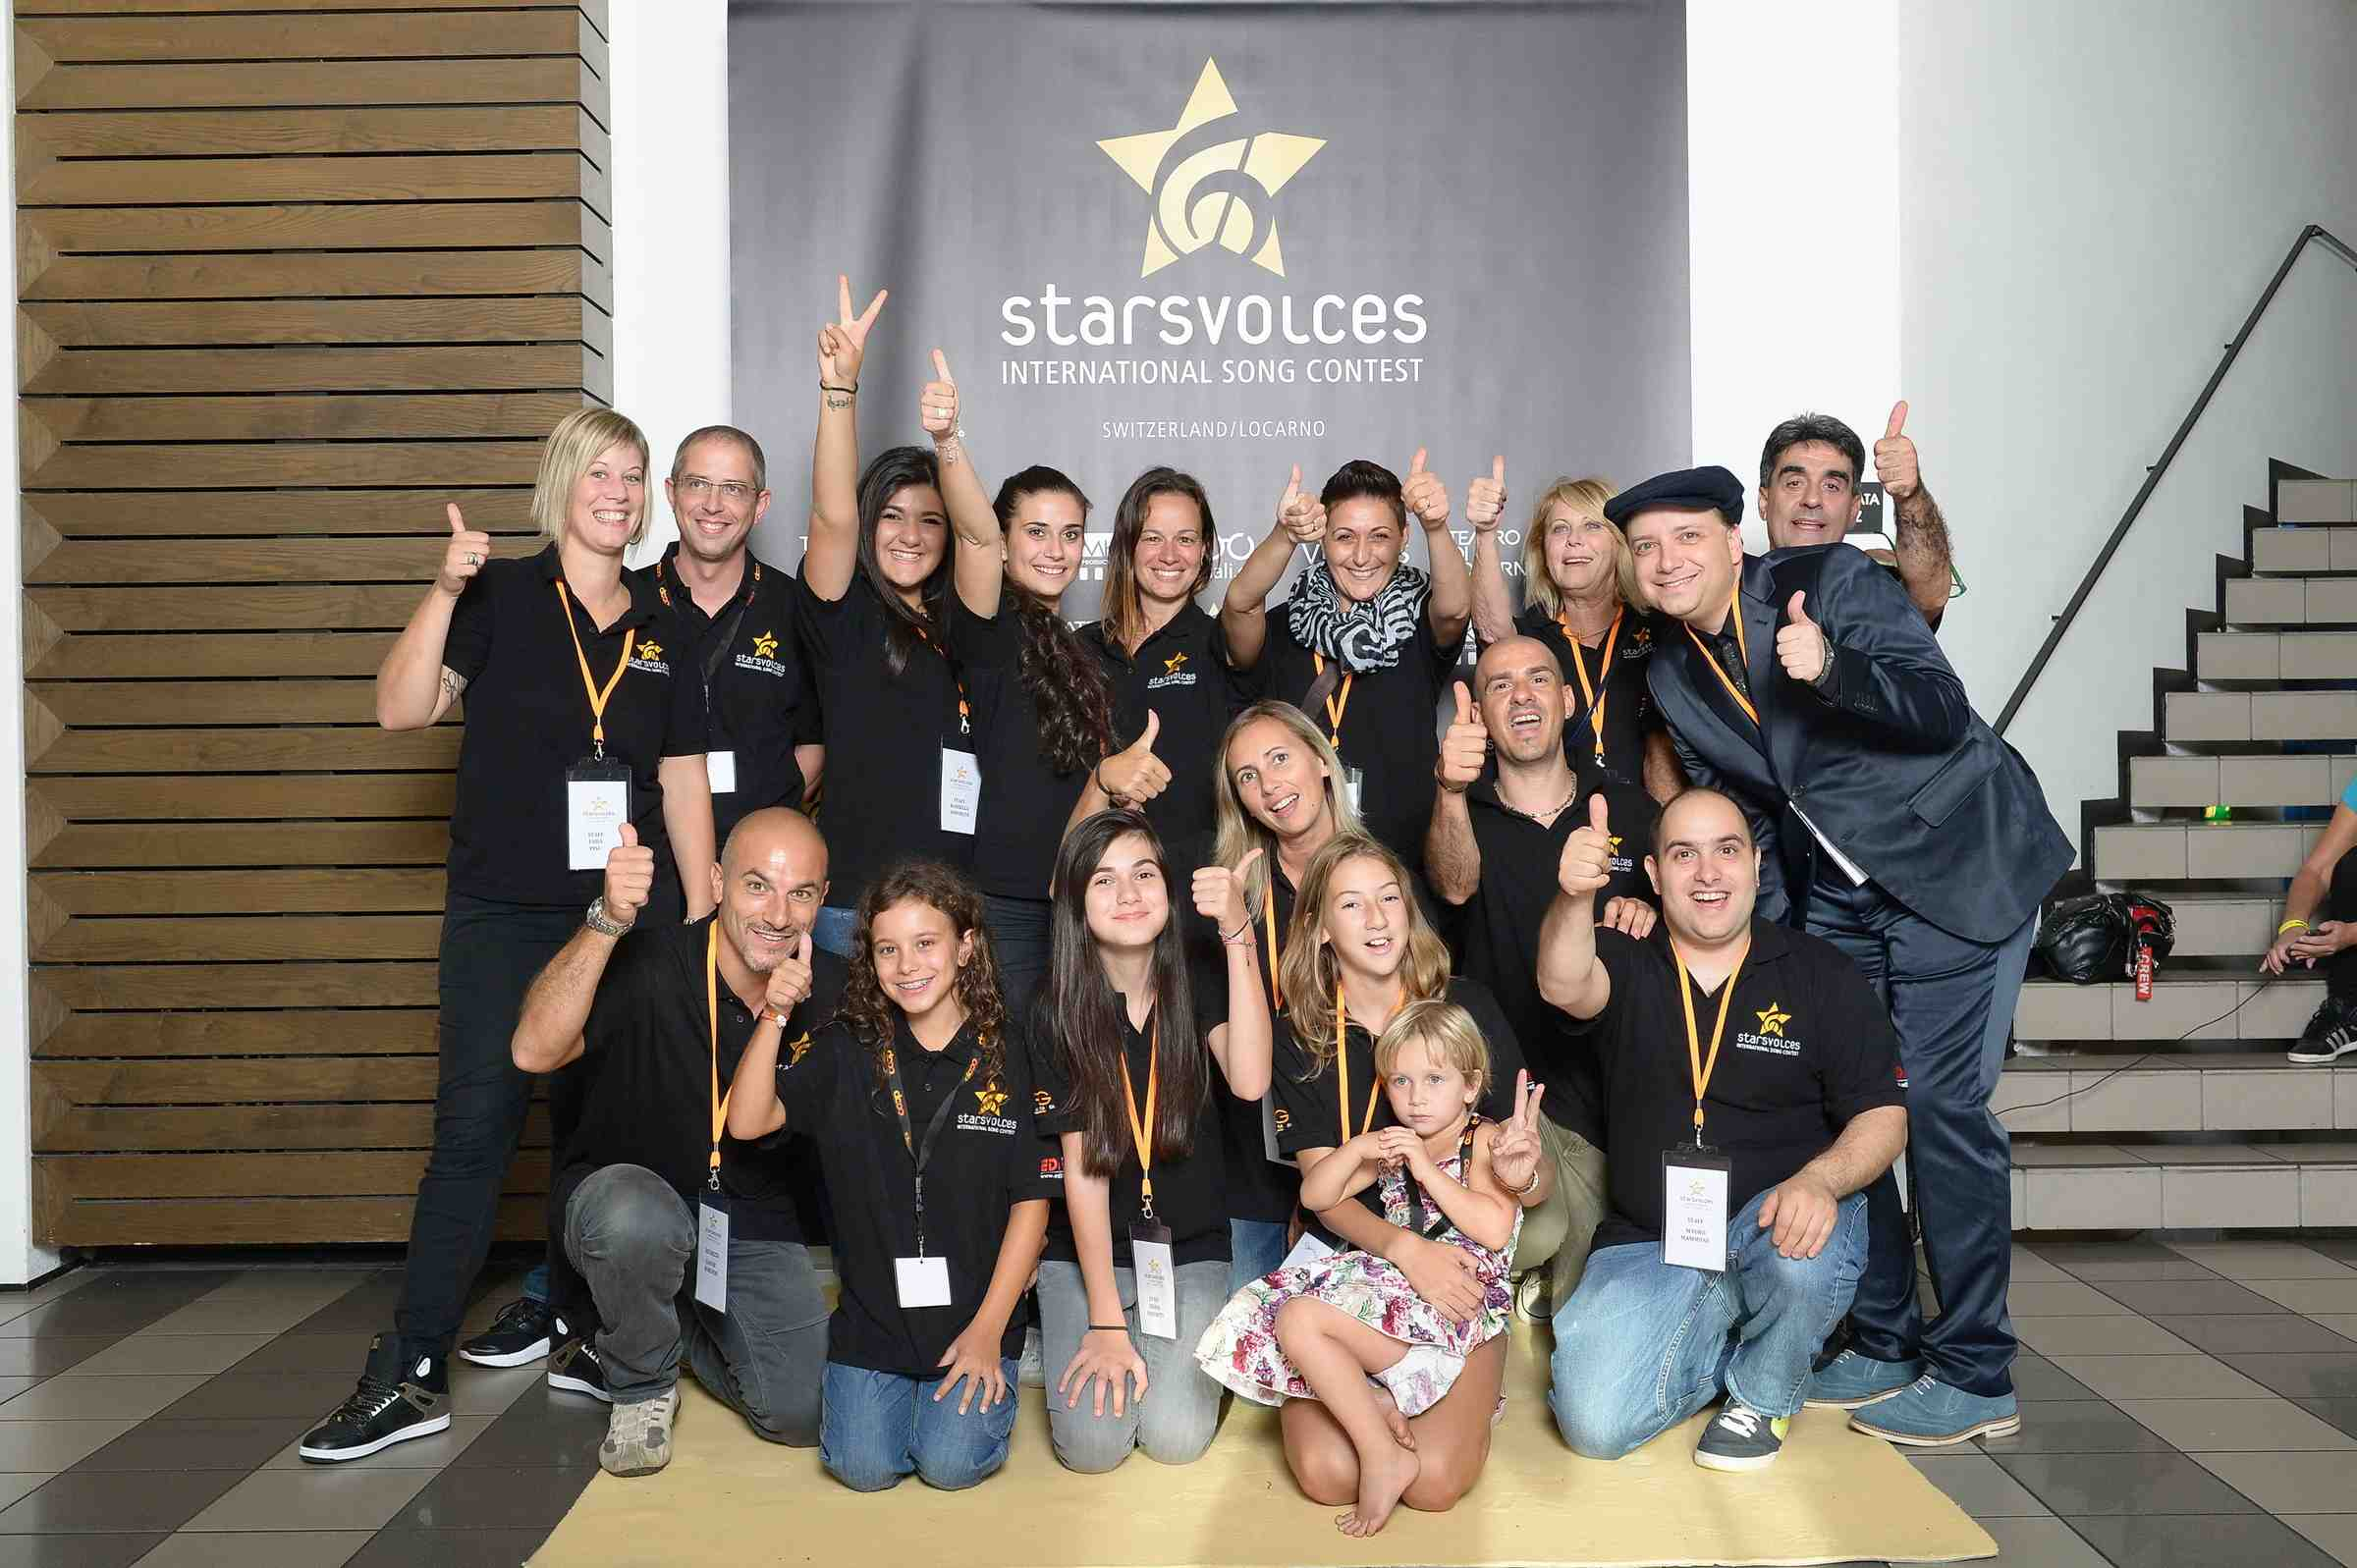 starsvoices-staff2014.jpg